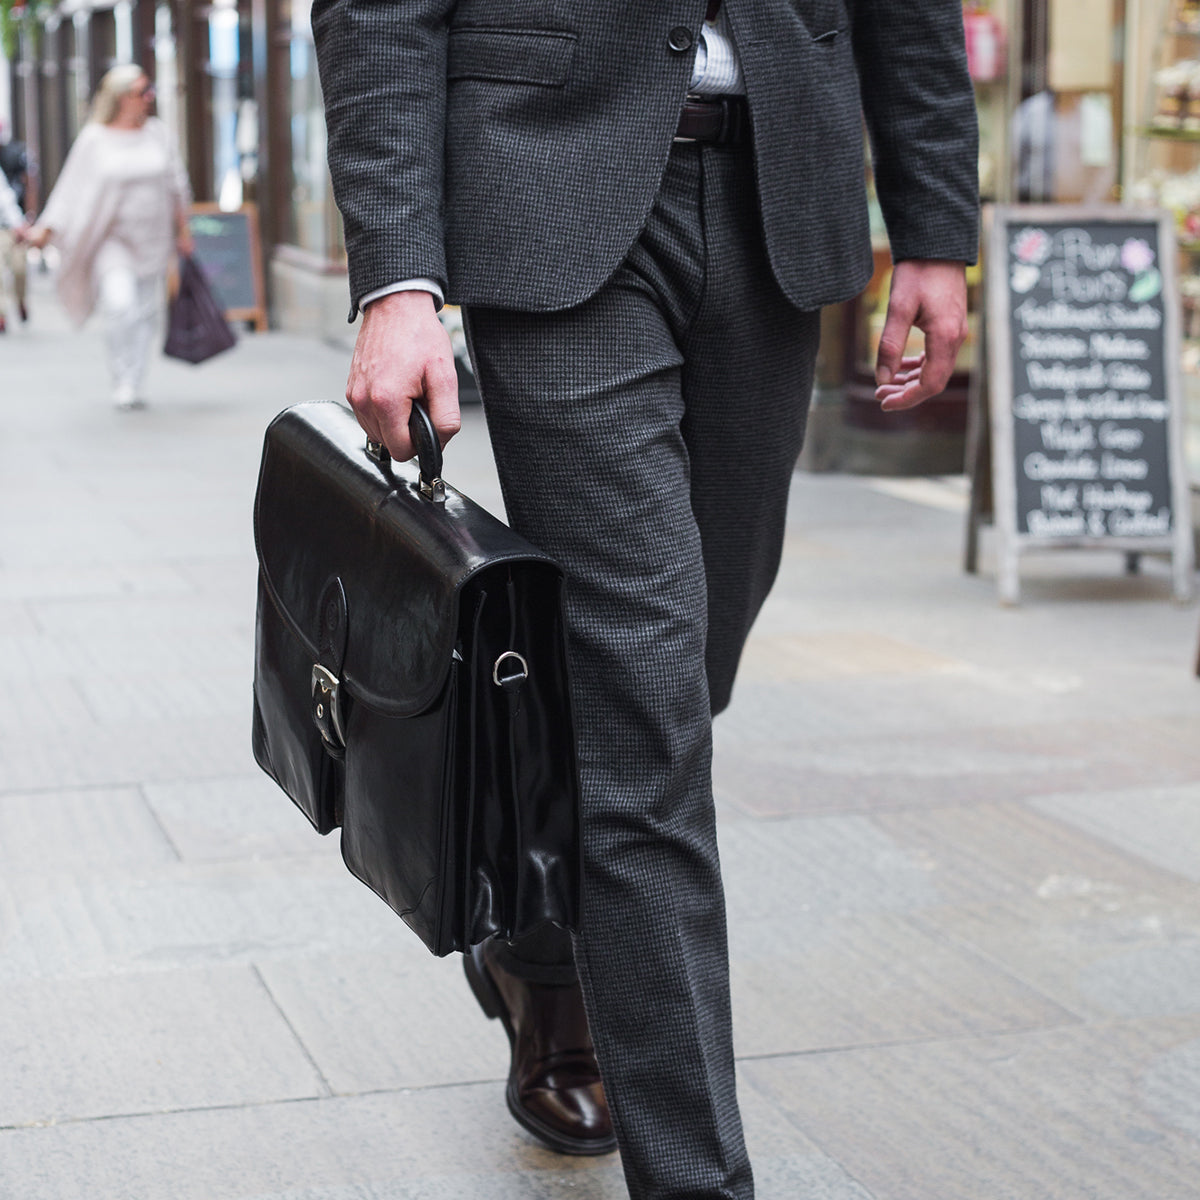 Image 8 of the 'Tomacelli' Handmade Black Veg-Tanned Briefcase